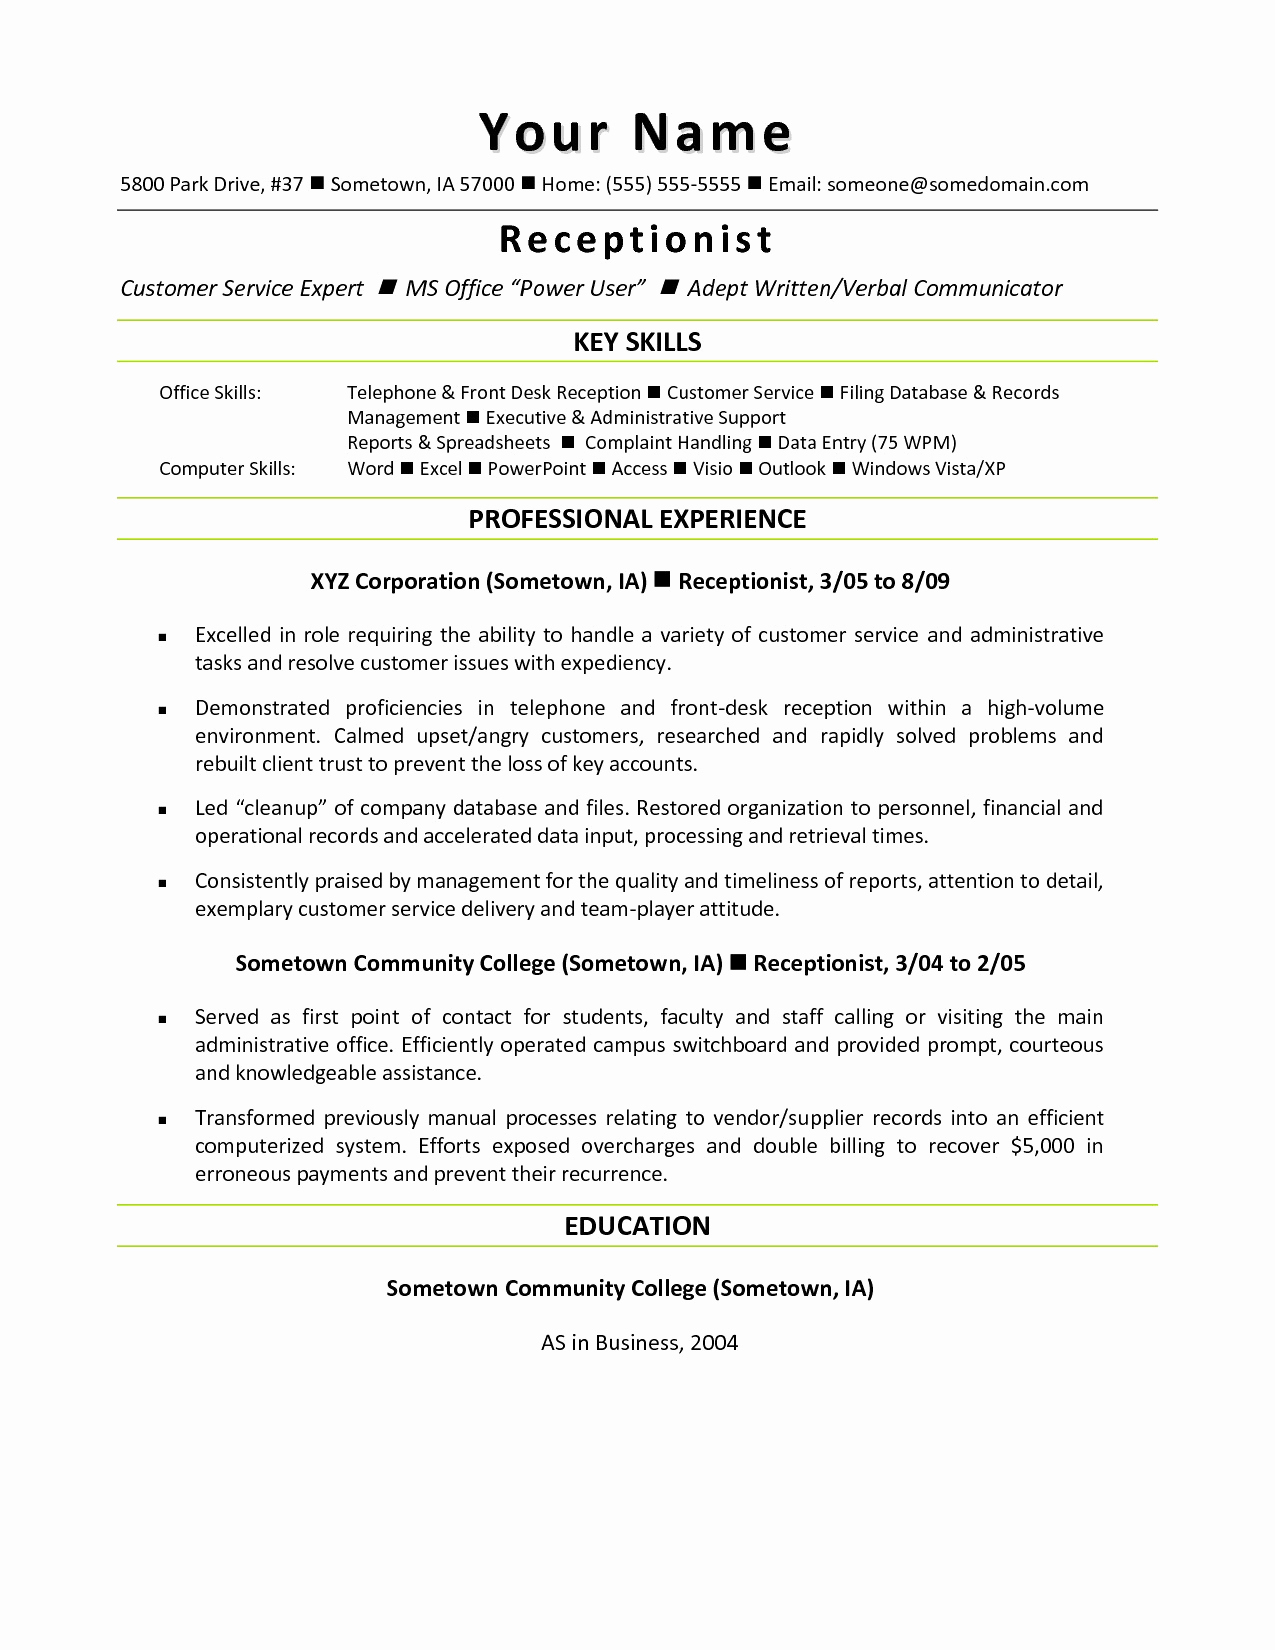 letter of agreement template Collection-Letter Agreement Examples Luxury Letter Agreement Template Awesome Free Resume 0d Letter 4-h